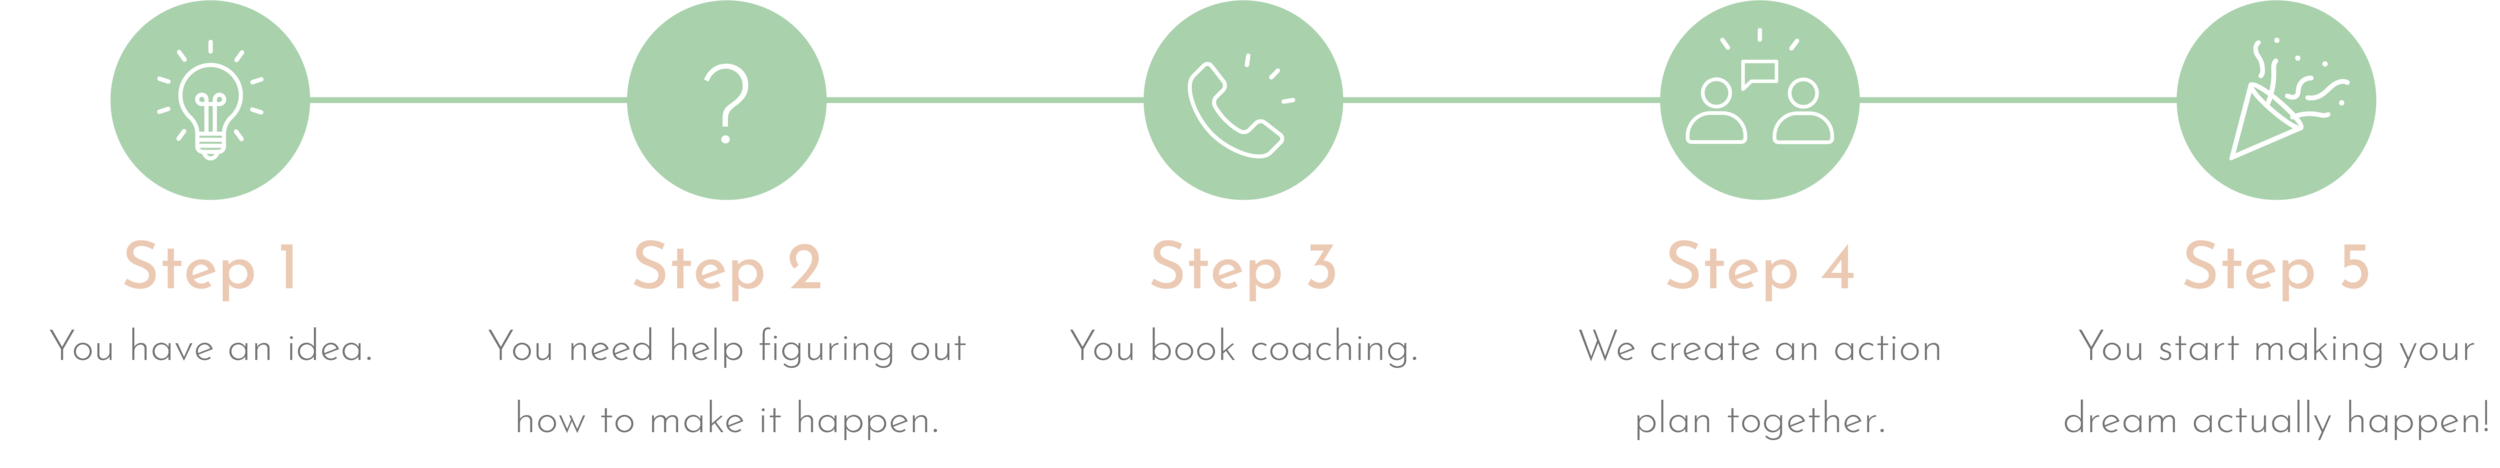 Coaching Plan Action Steps